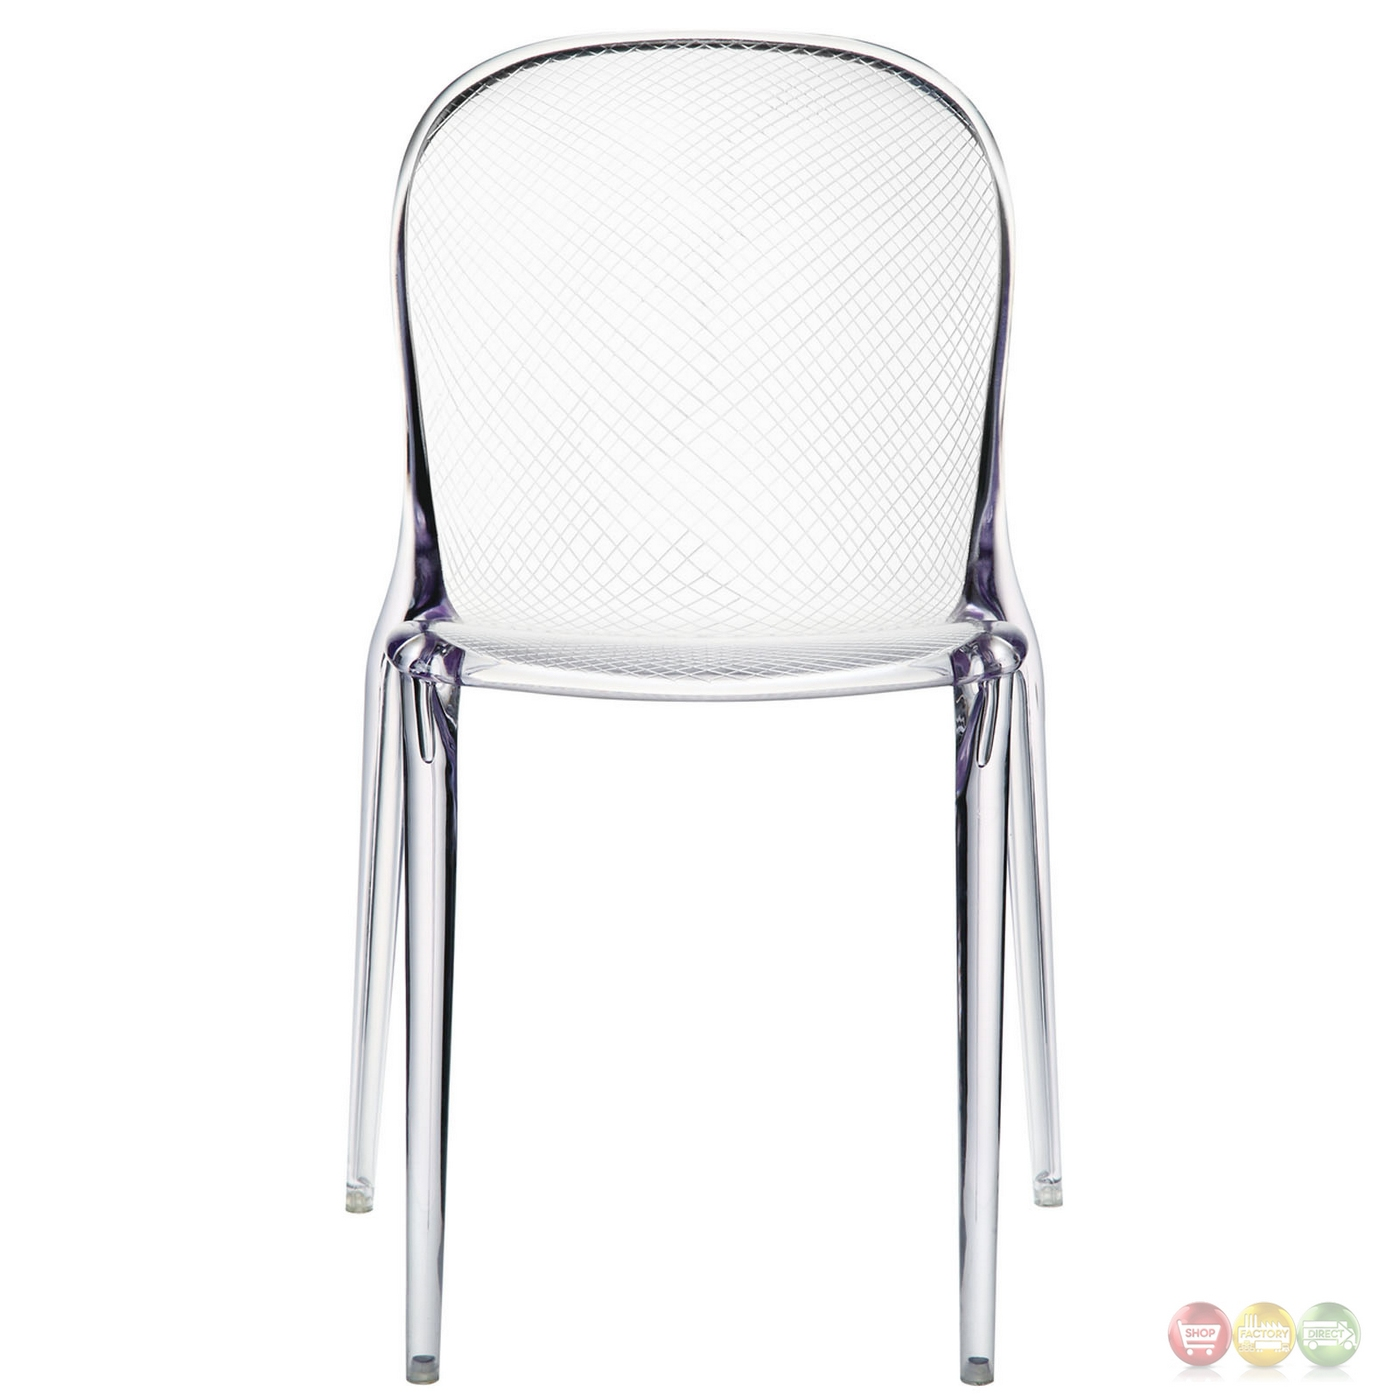 Plastic Clear Chair Scape Contemporary Transparent Acrylic Dining Side Chair